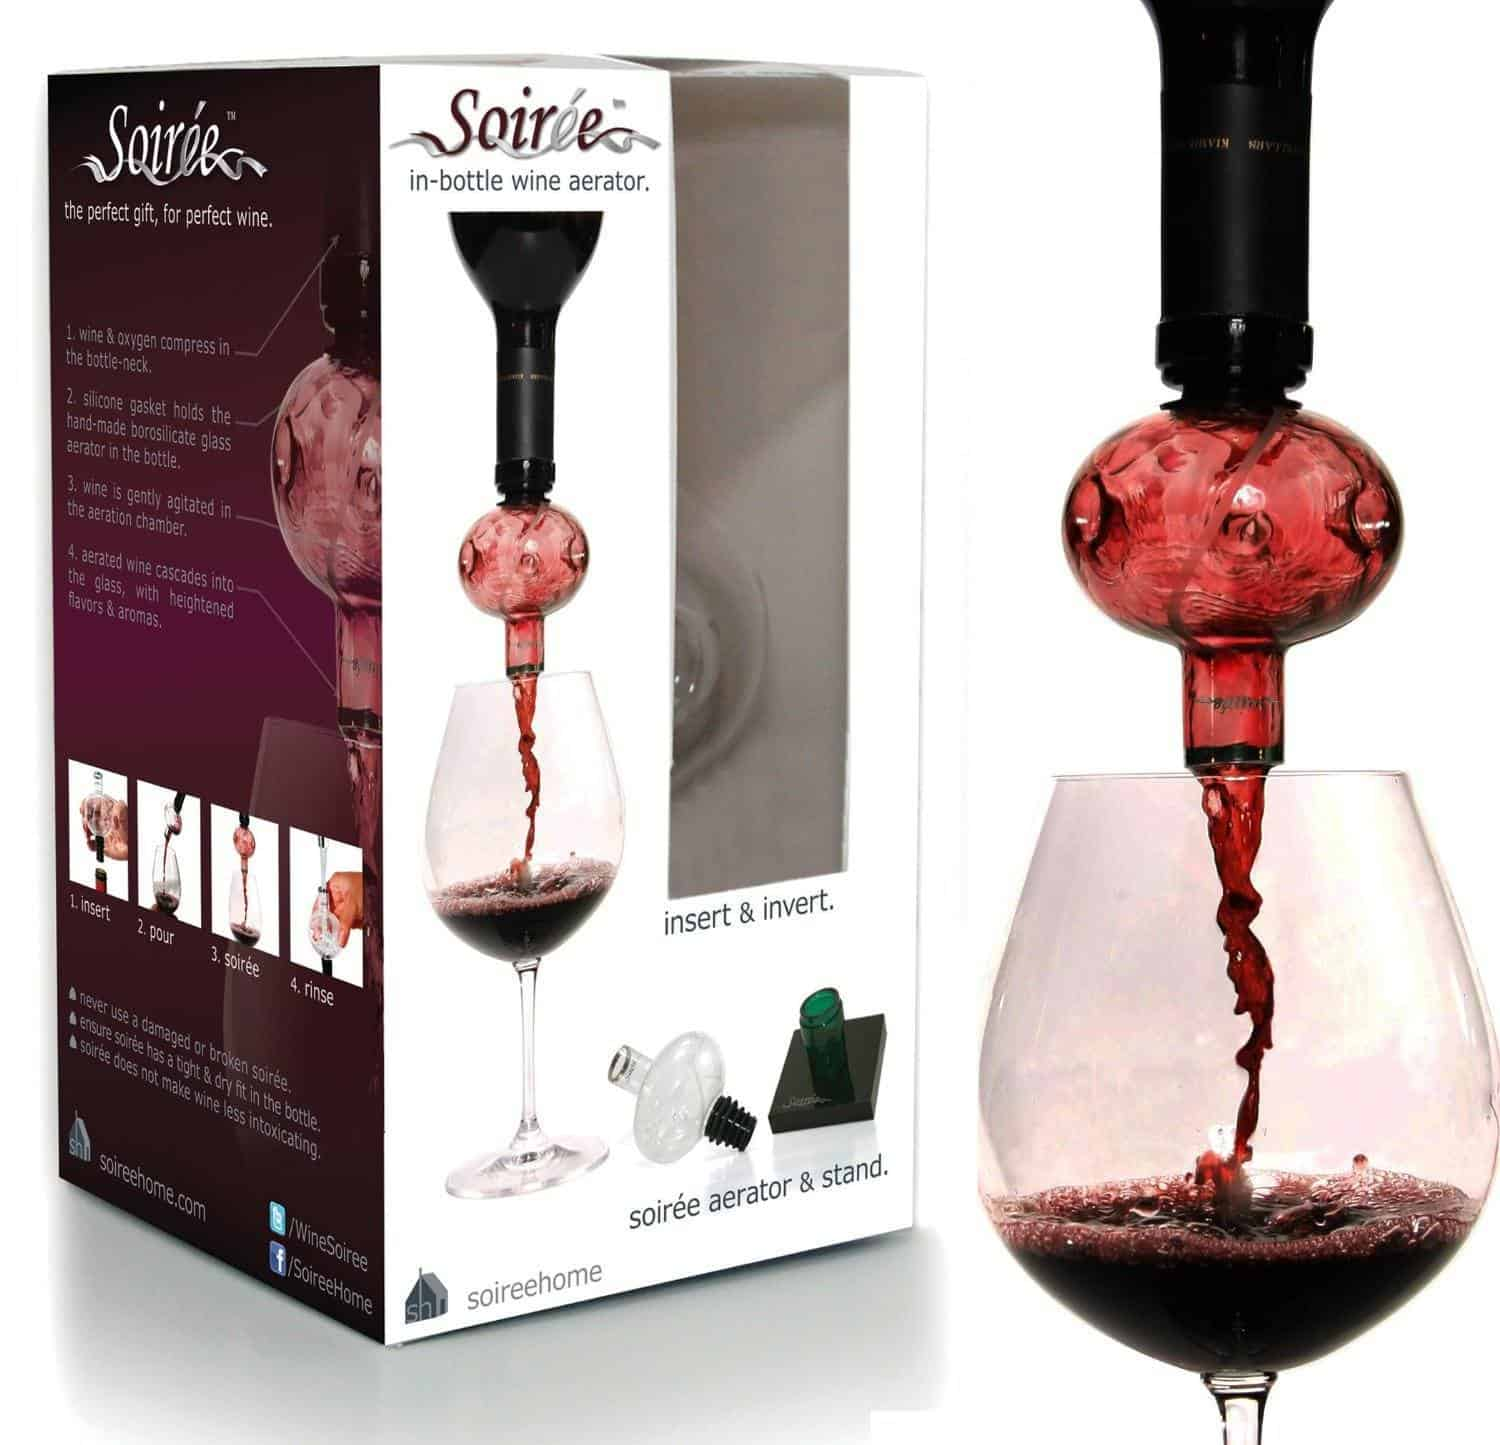 Soiree wine aerator review